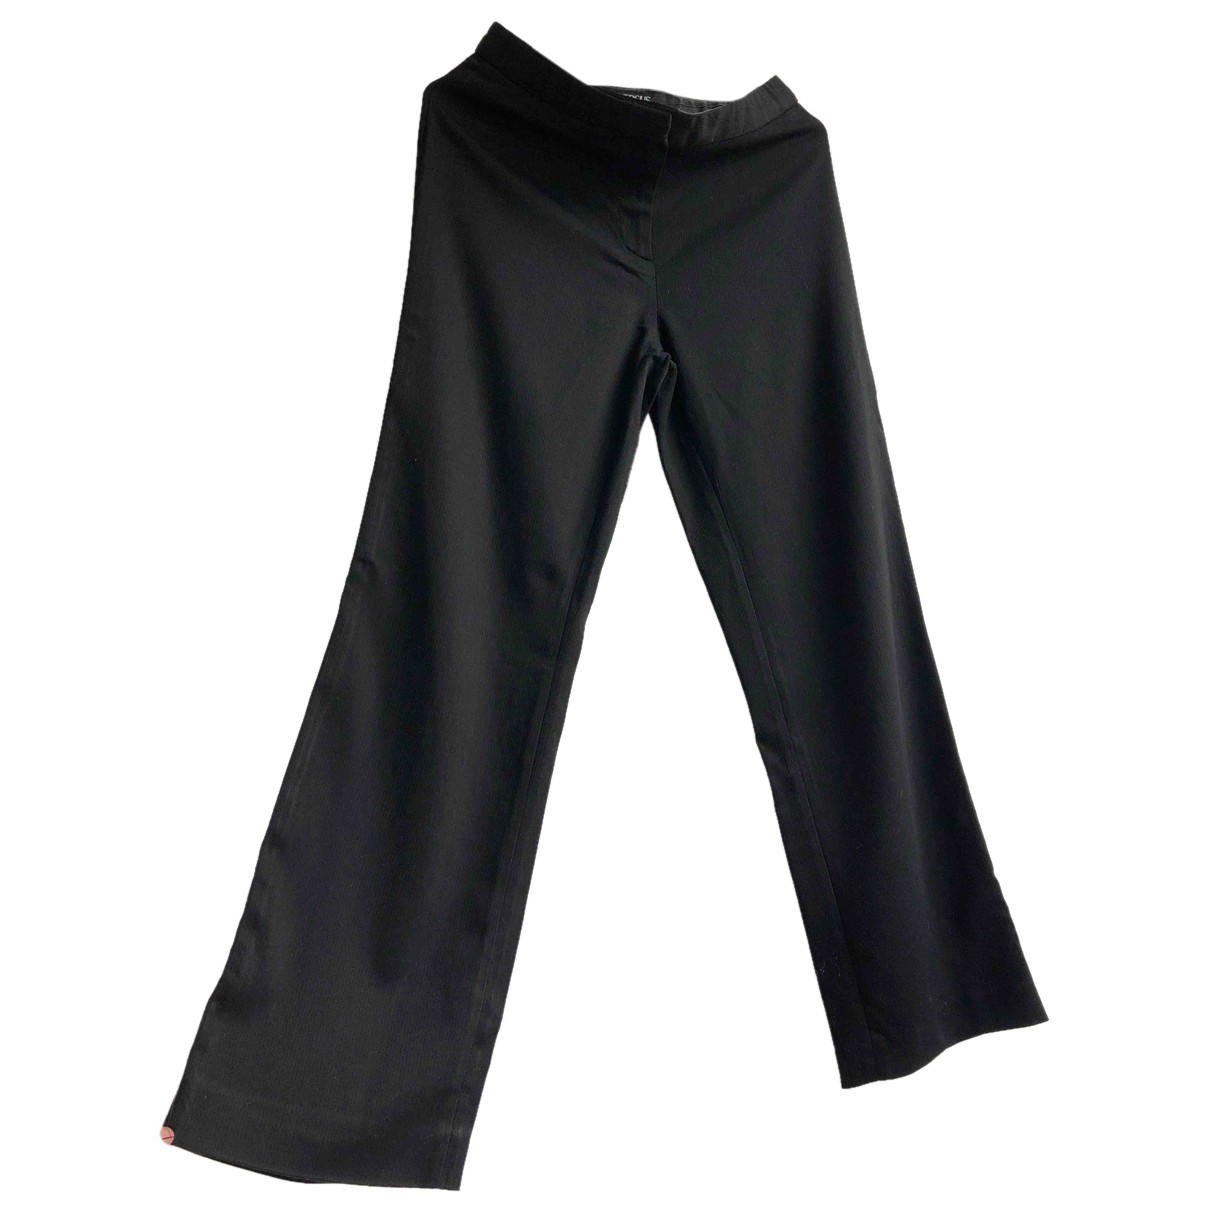 Versus N Black Trousers for Women M International